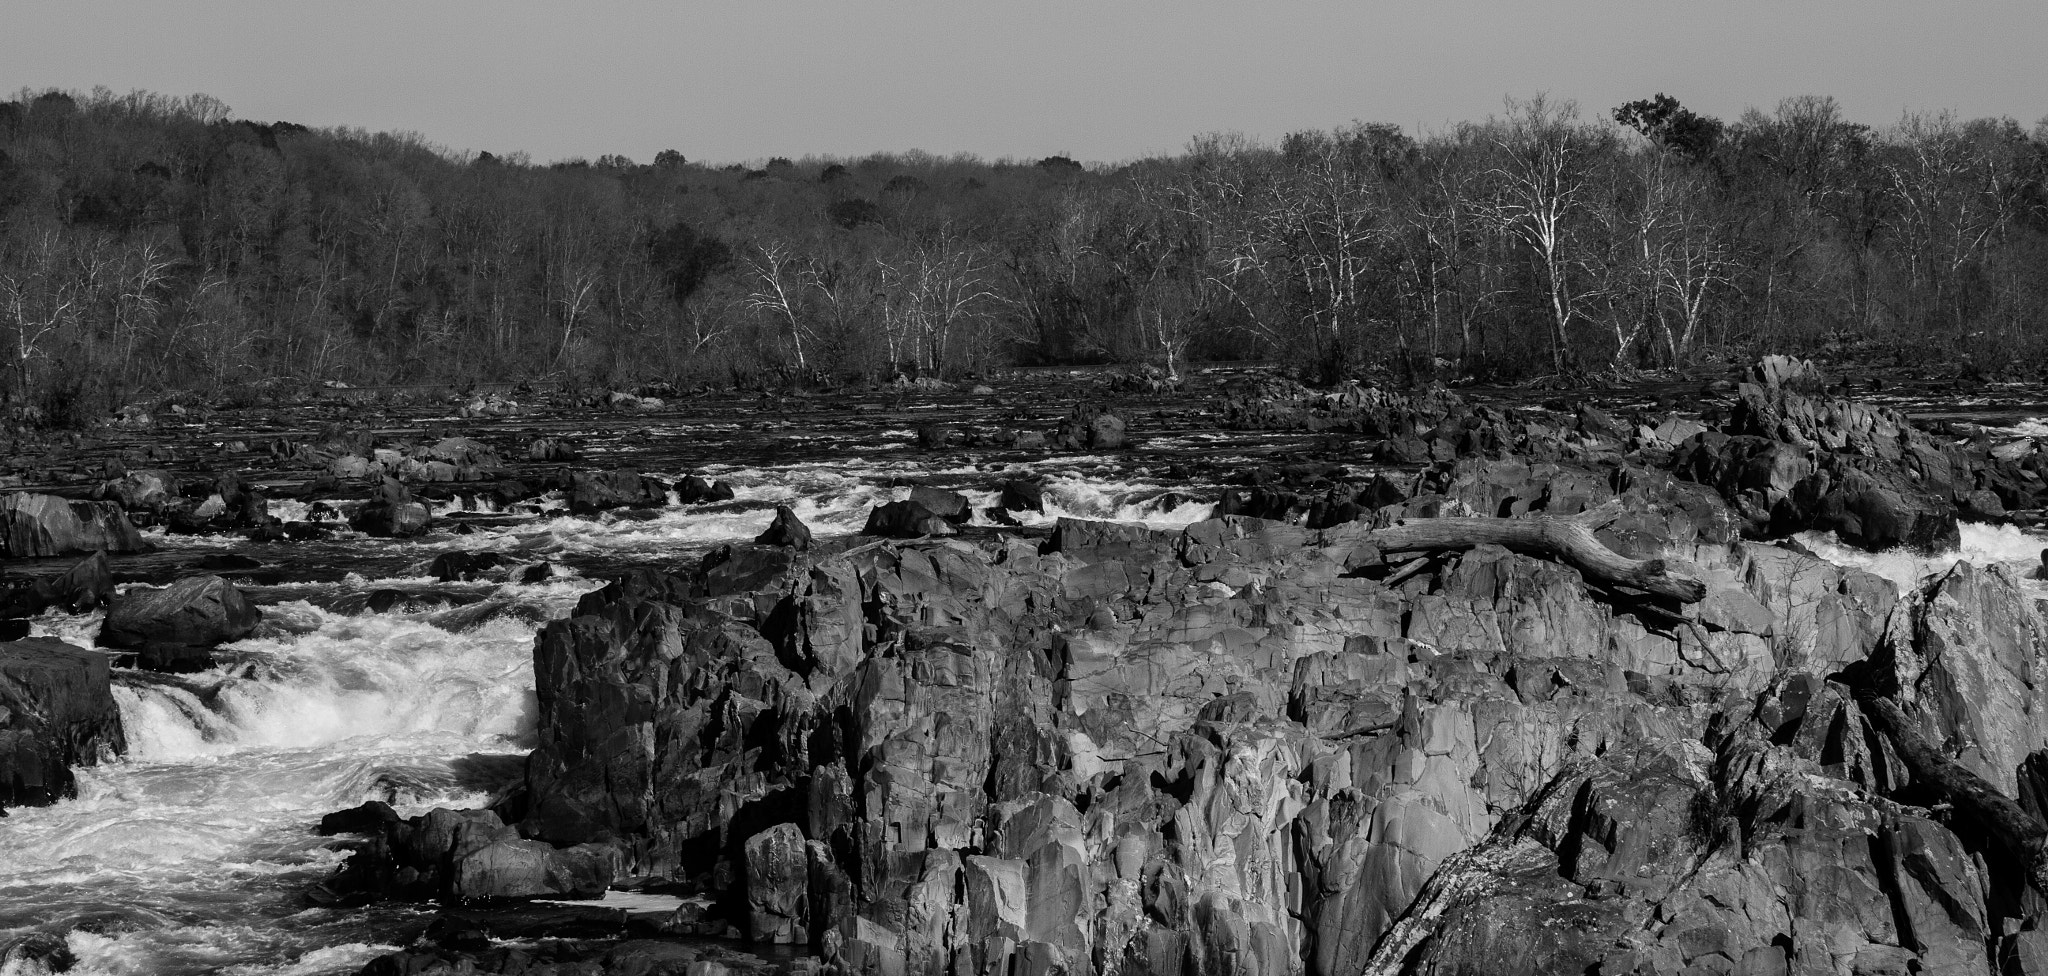 Photograph Great Falls Virginia by Eric Royse on 500px